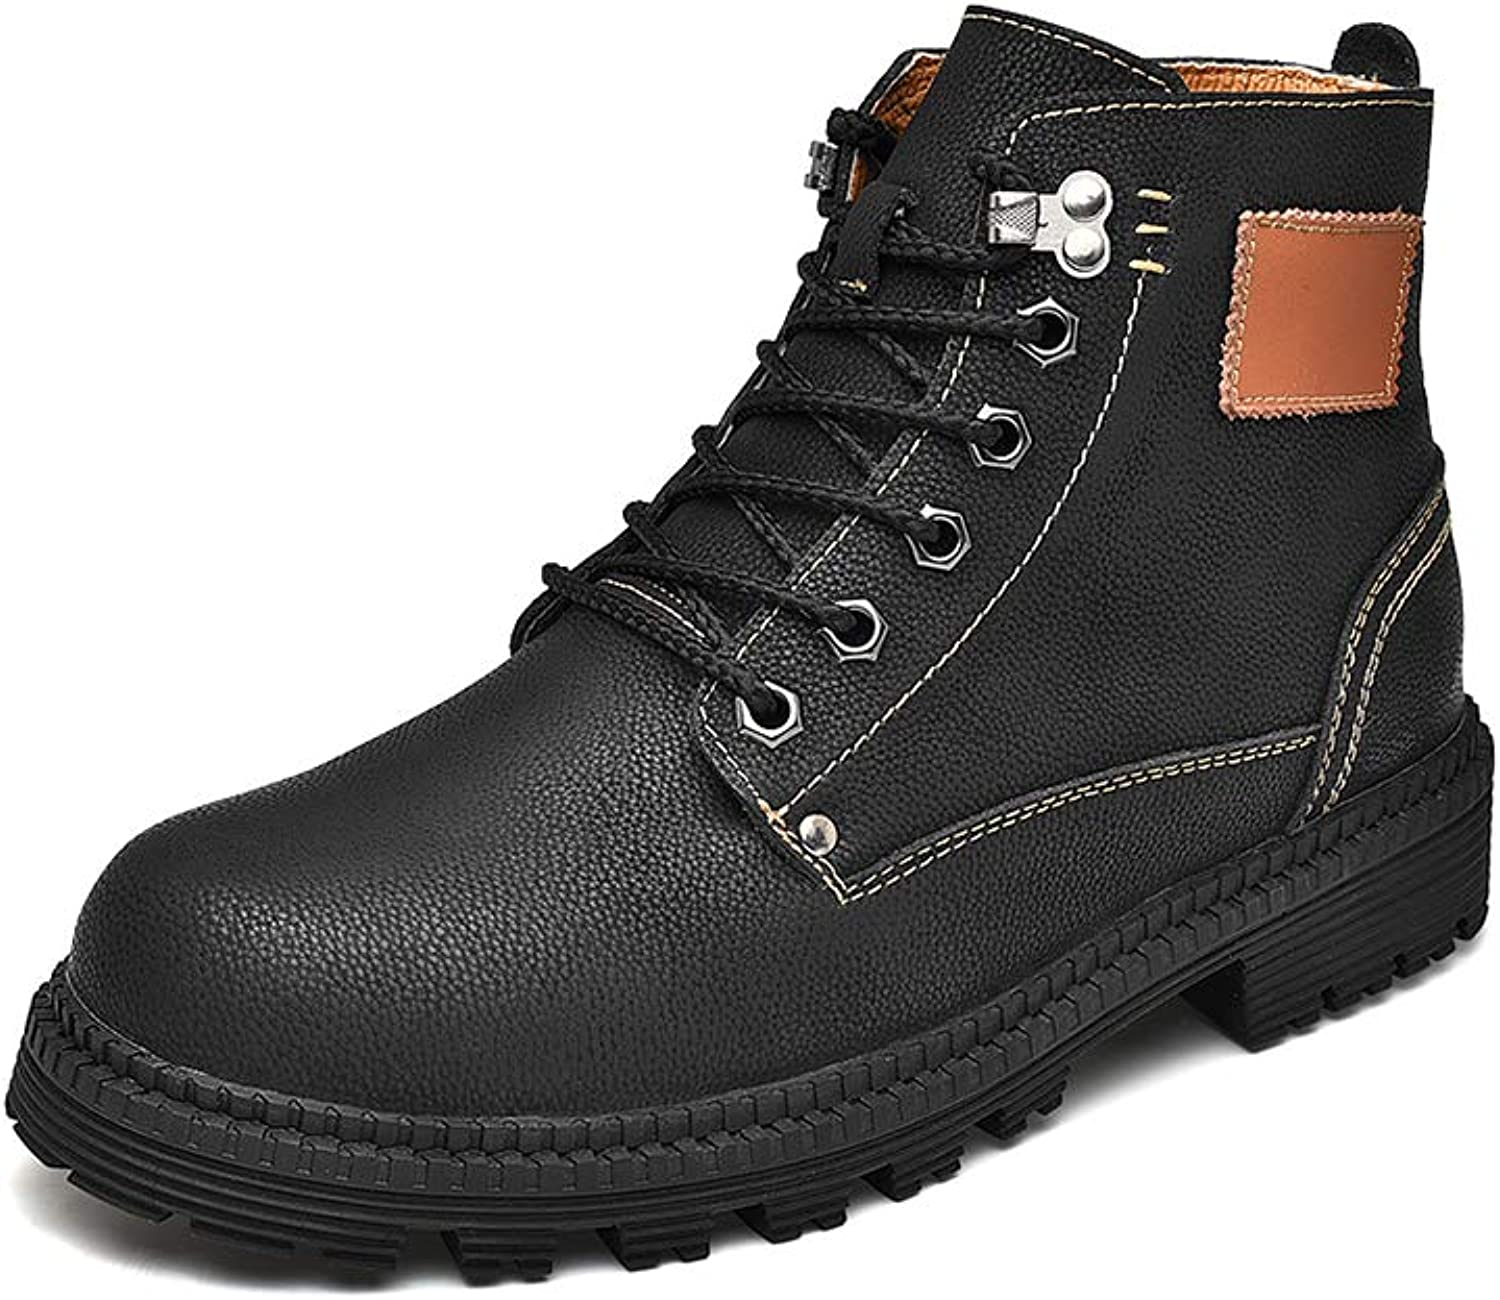 Men's Non-Slip Casual Boots Plus Velvet Retro Martin Boots Breathable High Help Oxford Boots Outdoor Front tie Work Boots